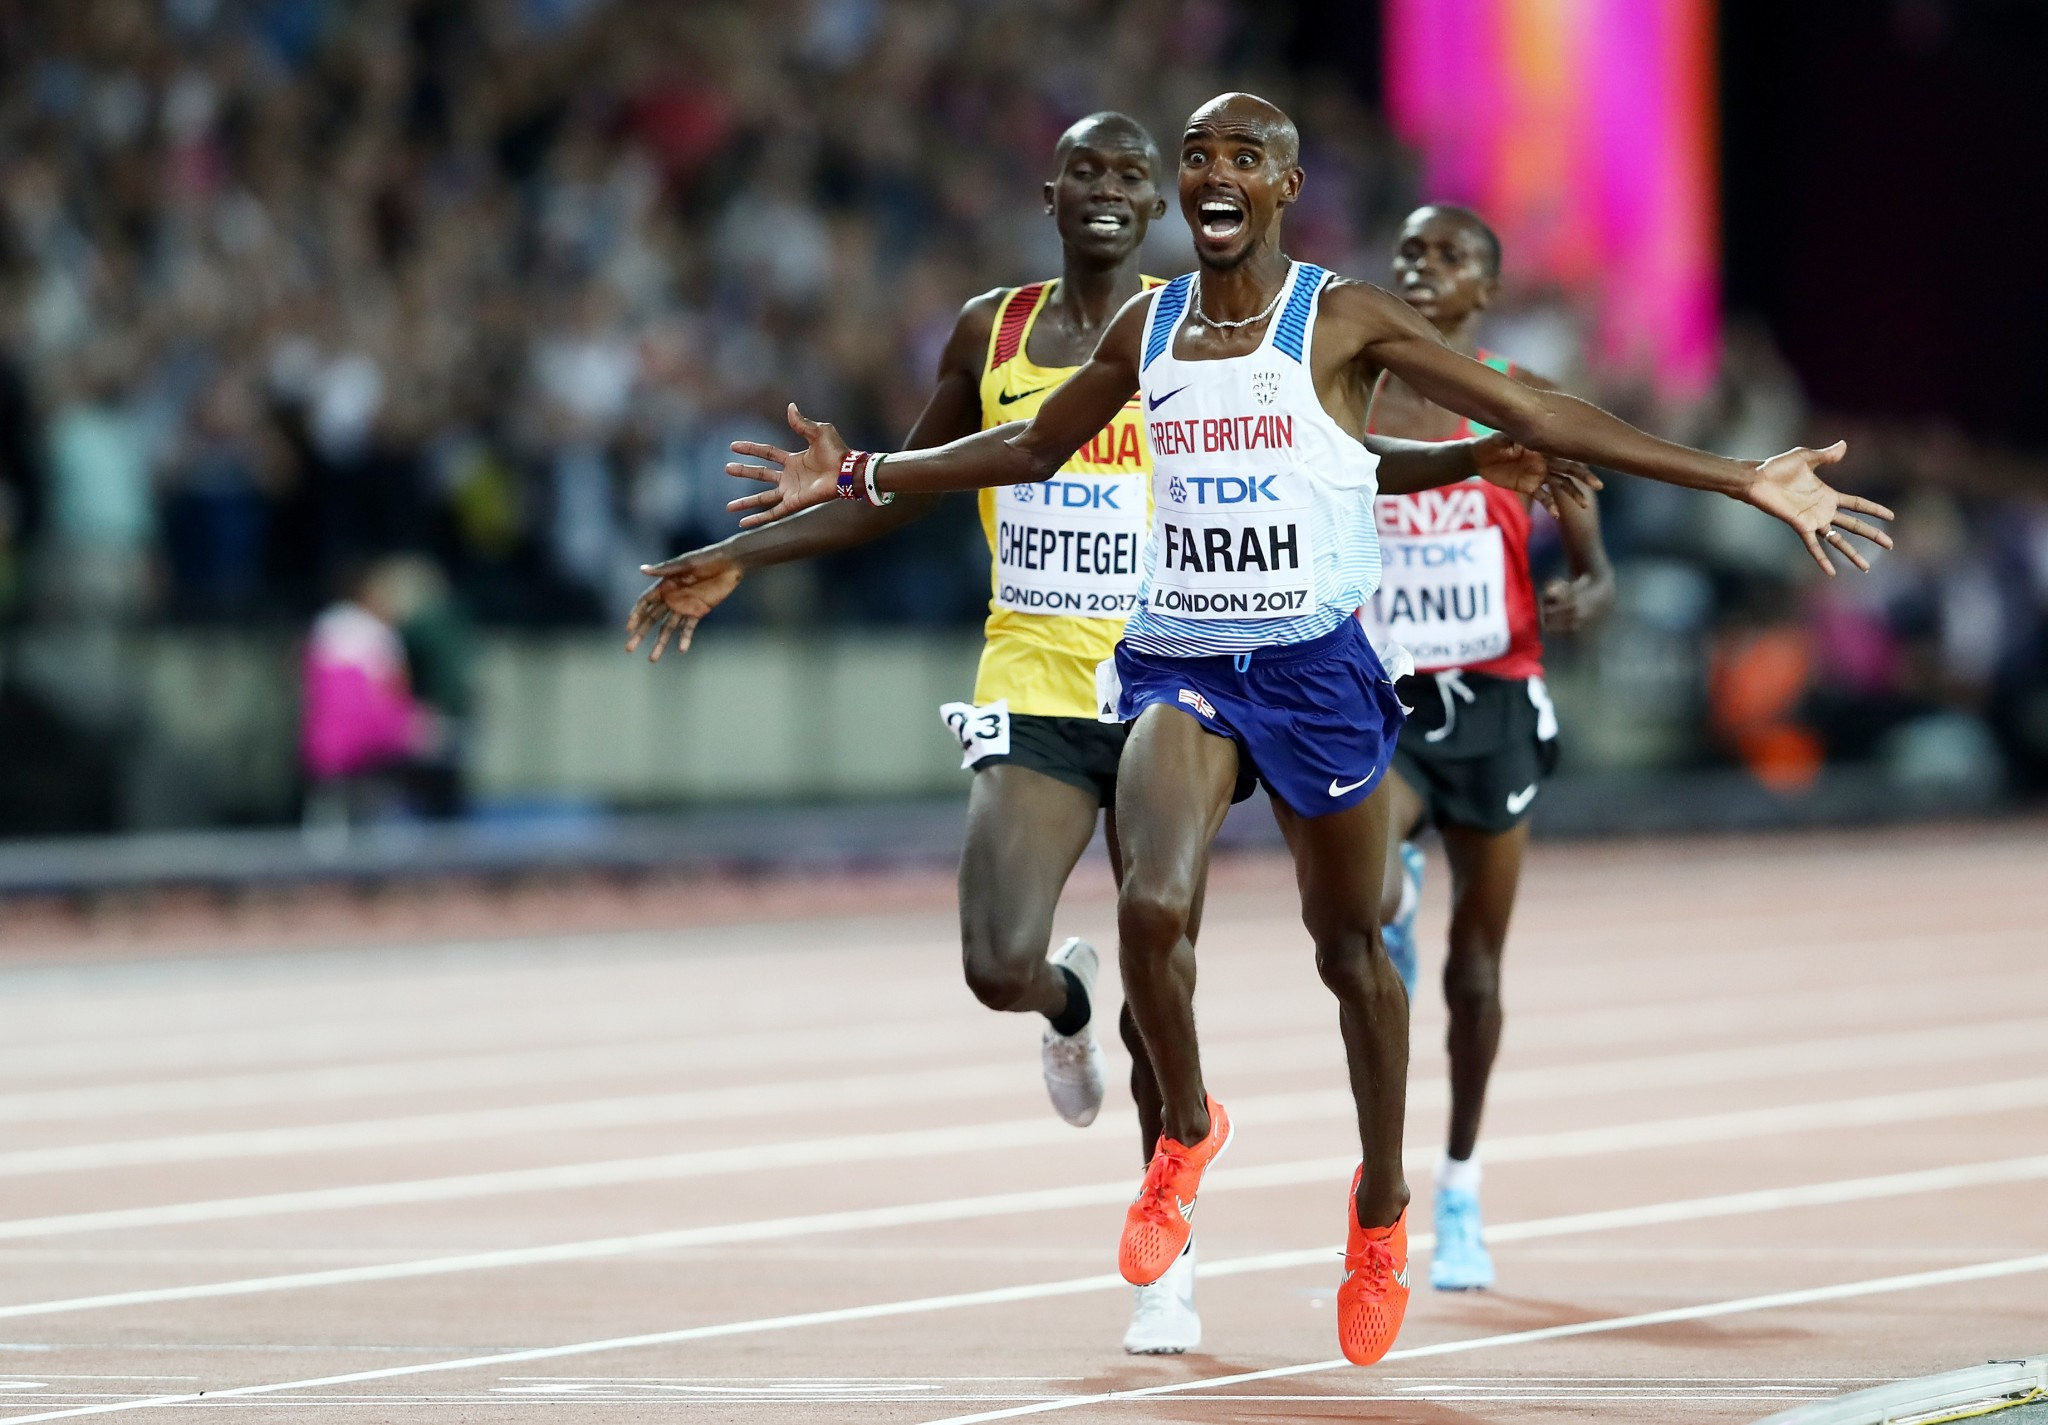 Farah lights-up home crowd to win first gold medal at IAAF World Championships